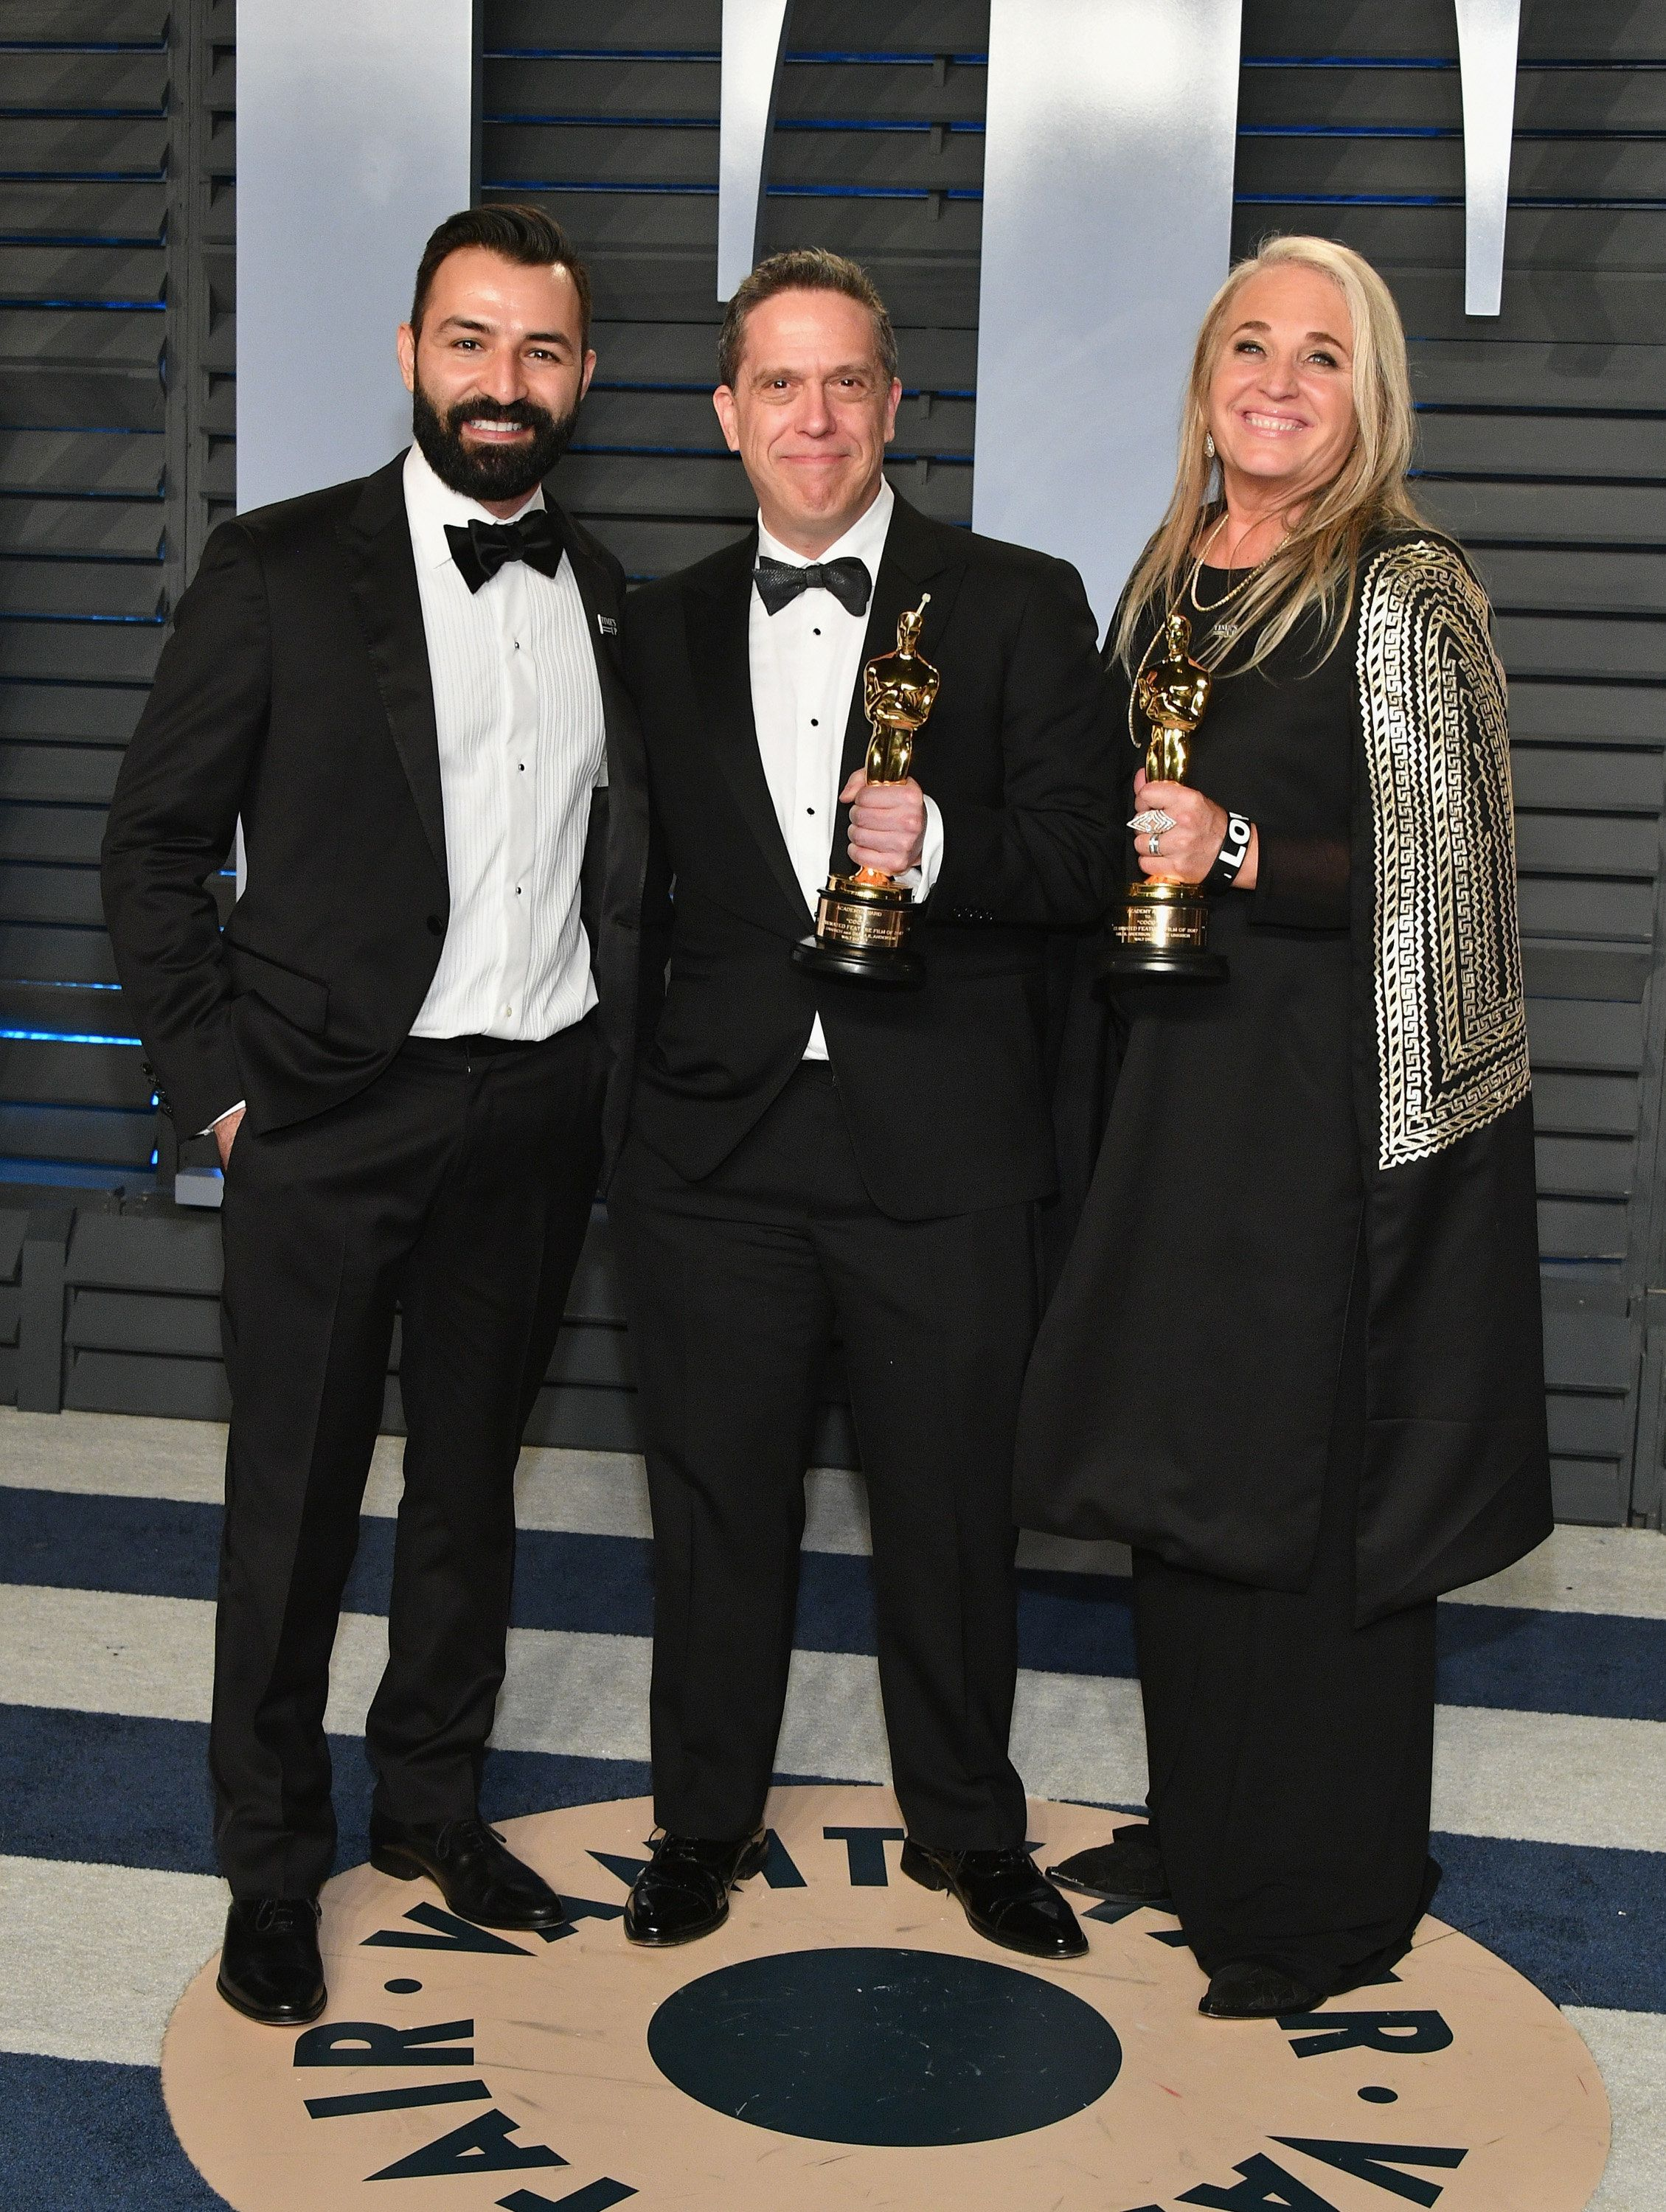 BEVERLY HILLS, CA - MARCH 04:  (L-R) Adrian Molina, Lee Unkrich and Darla K. Anderson attend the 2018 Vanity Fair Oscar Party hosted by Radhika Jones at Wallis Annenberg Center for the Performing Arts on March 4, 2018 in Beverly Hills, California.  (Photo by Dia Dipasupil/Getty Images)